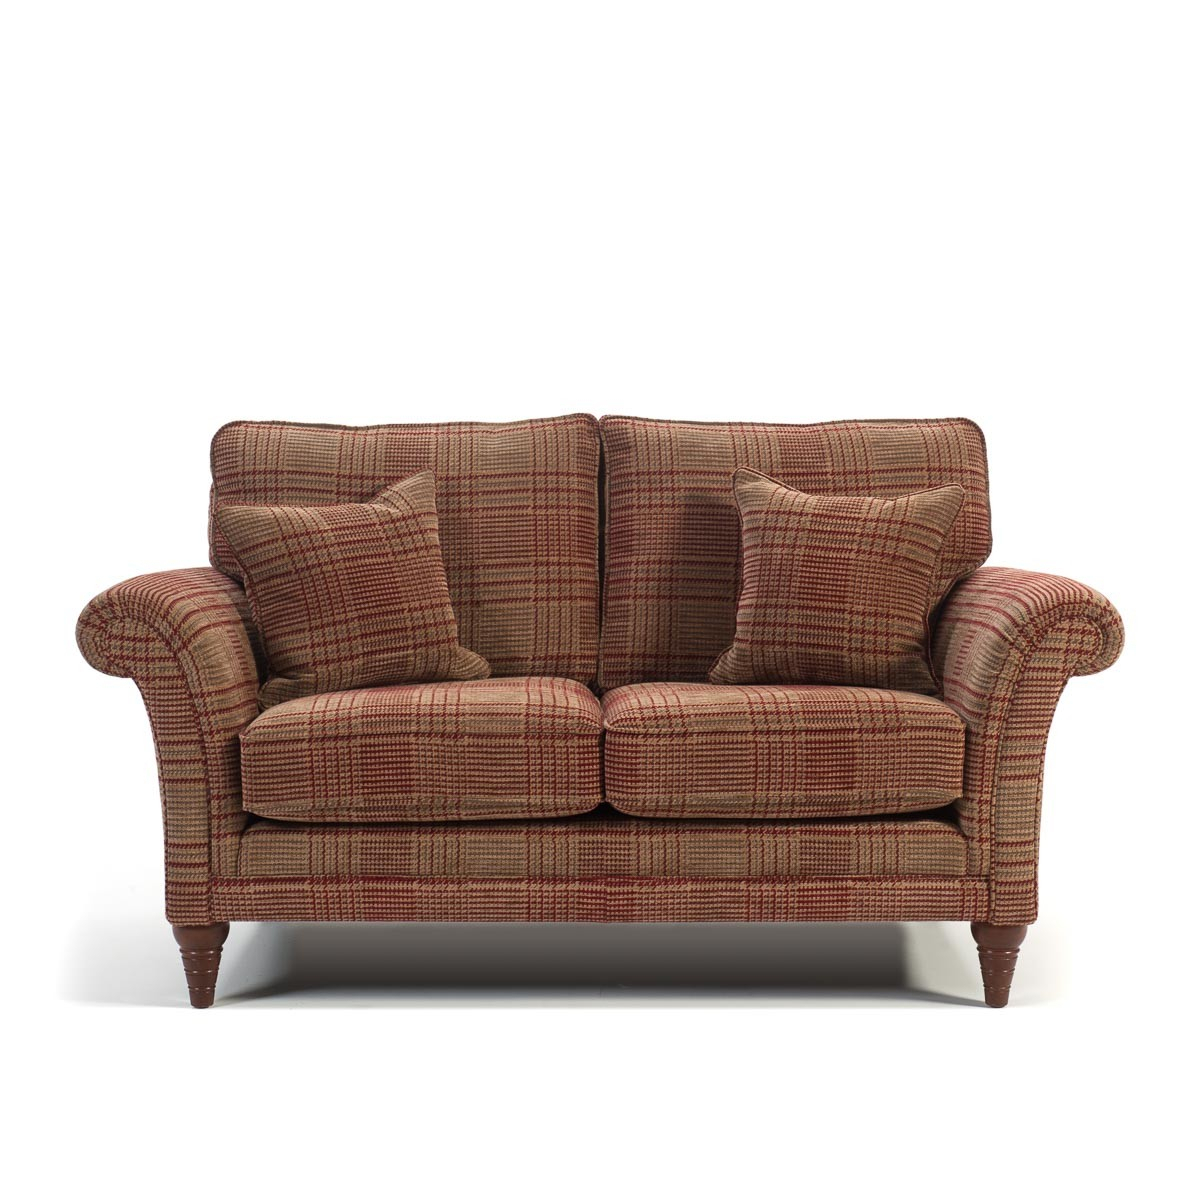 Parker Knoll Burghley 2 Seater Sofa | 2 Seaters | Sofas | Caseys Throughout Parker Sofa Chairs (View 12 of 25)